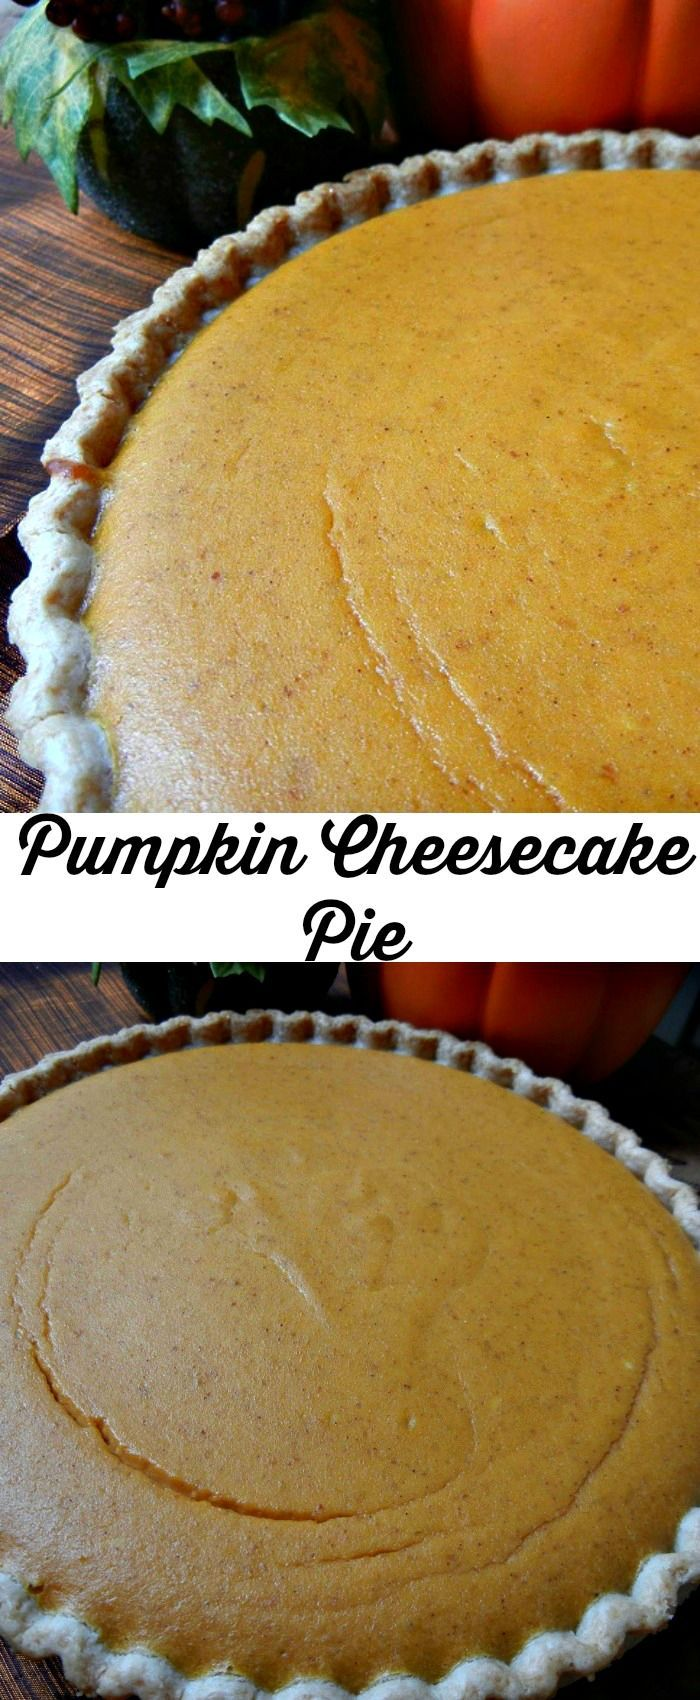 Pumpkin Cheesecake Pie from willcookforsmiles.com #pumpkin #dessert #holiday